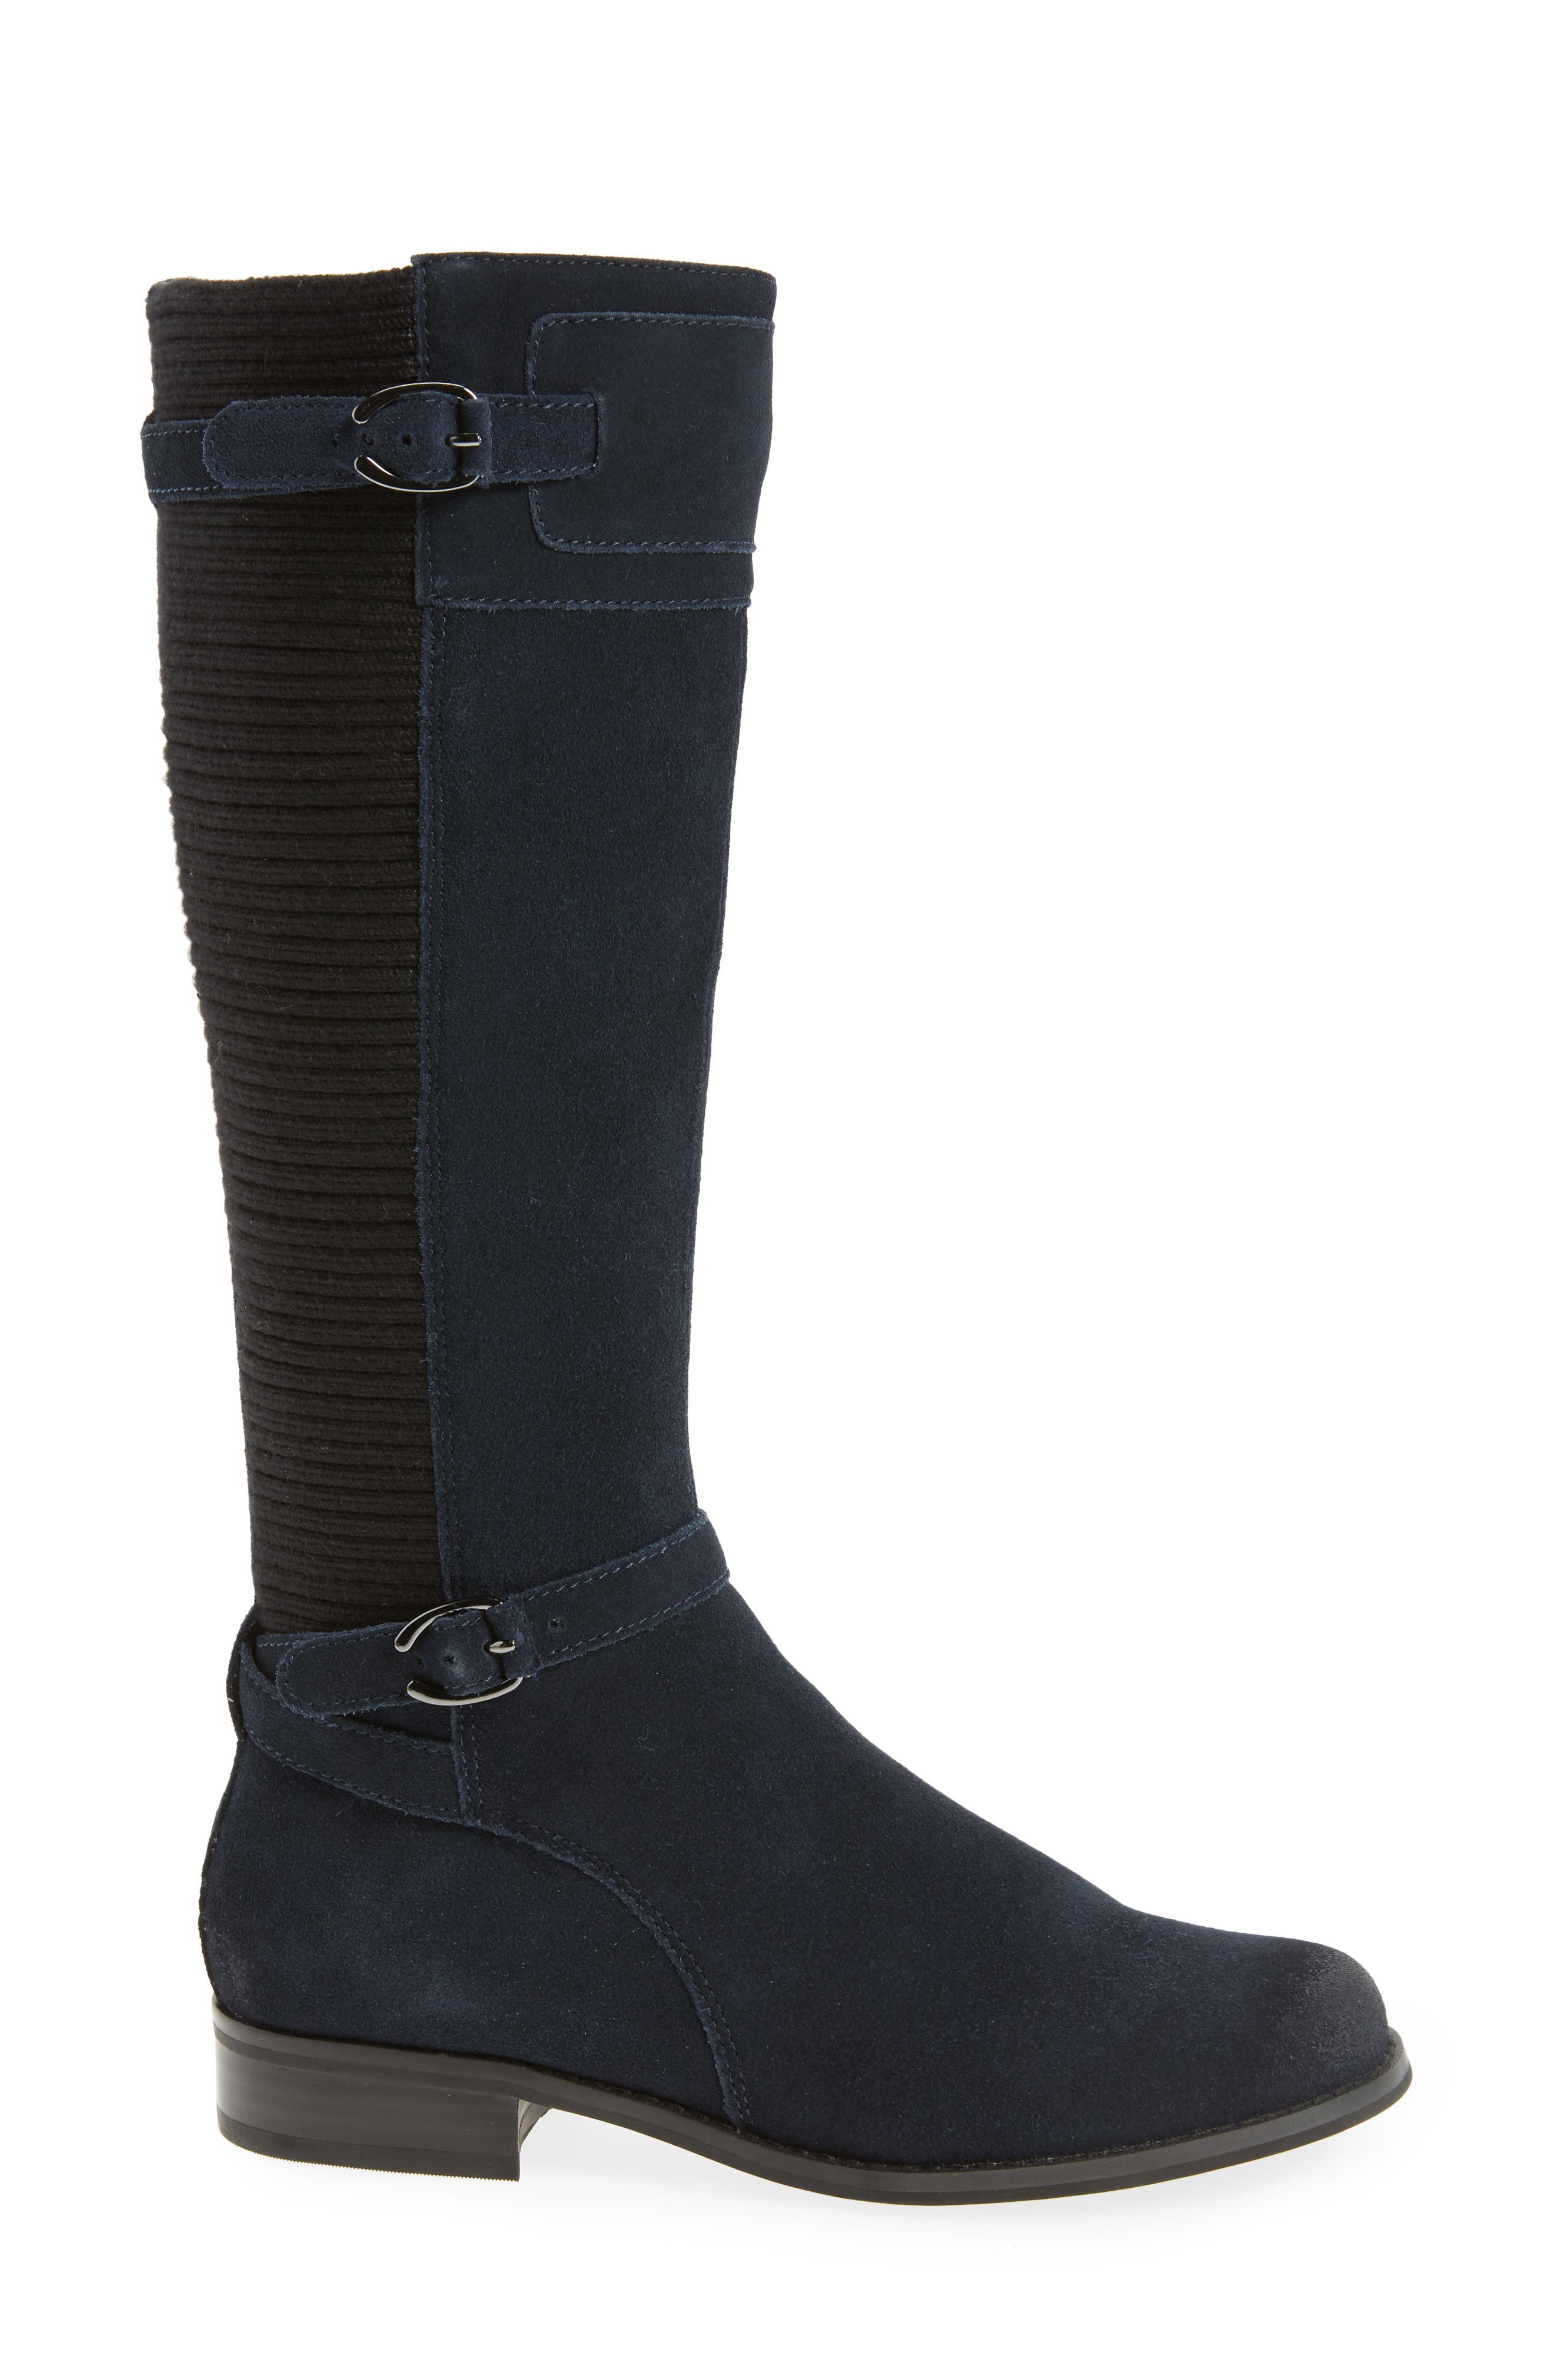 'Chelsea' Riding Boot,                             Alternate thumbnail 3, color,                             NAVY SUEDE